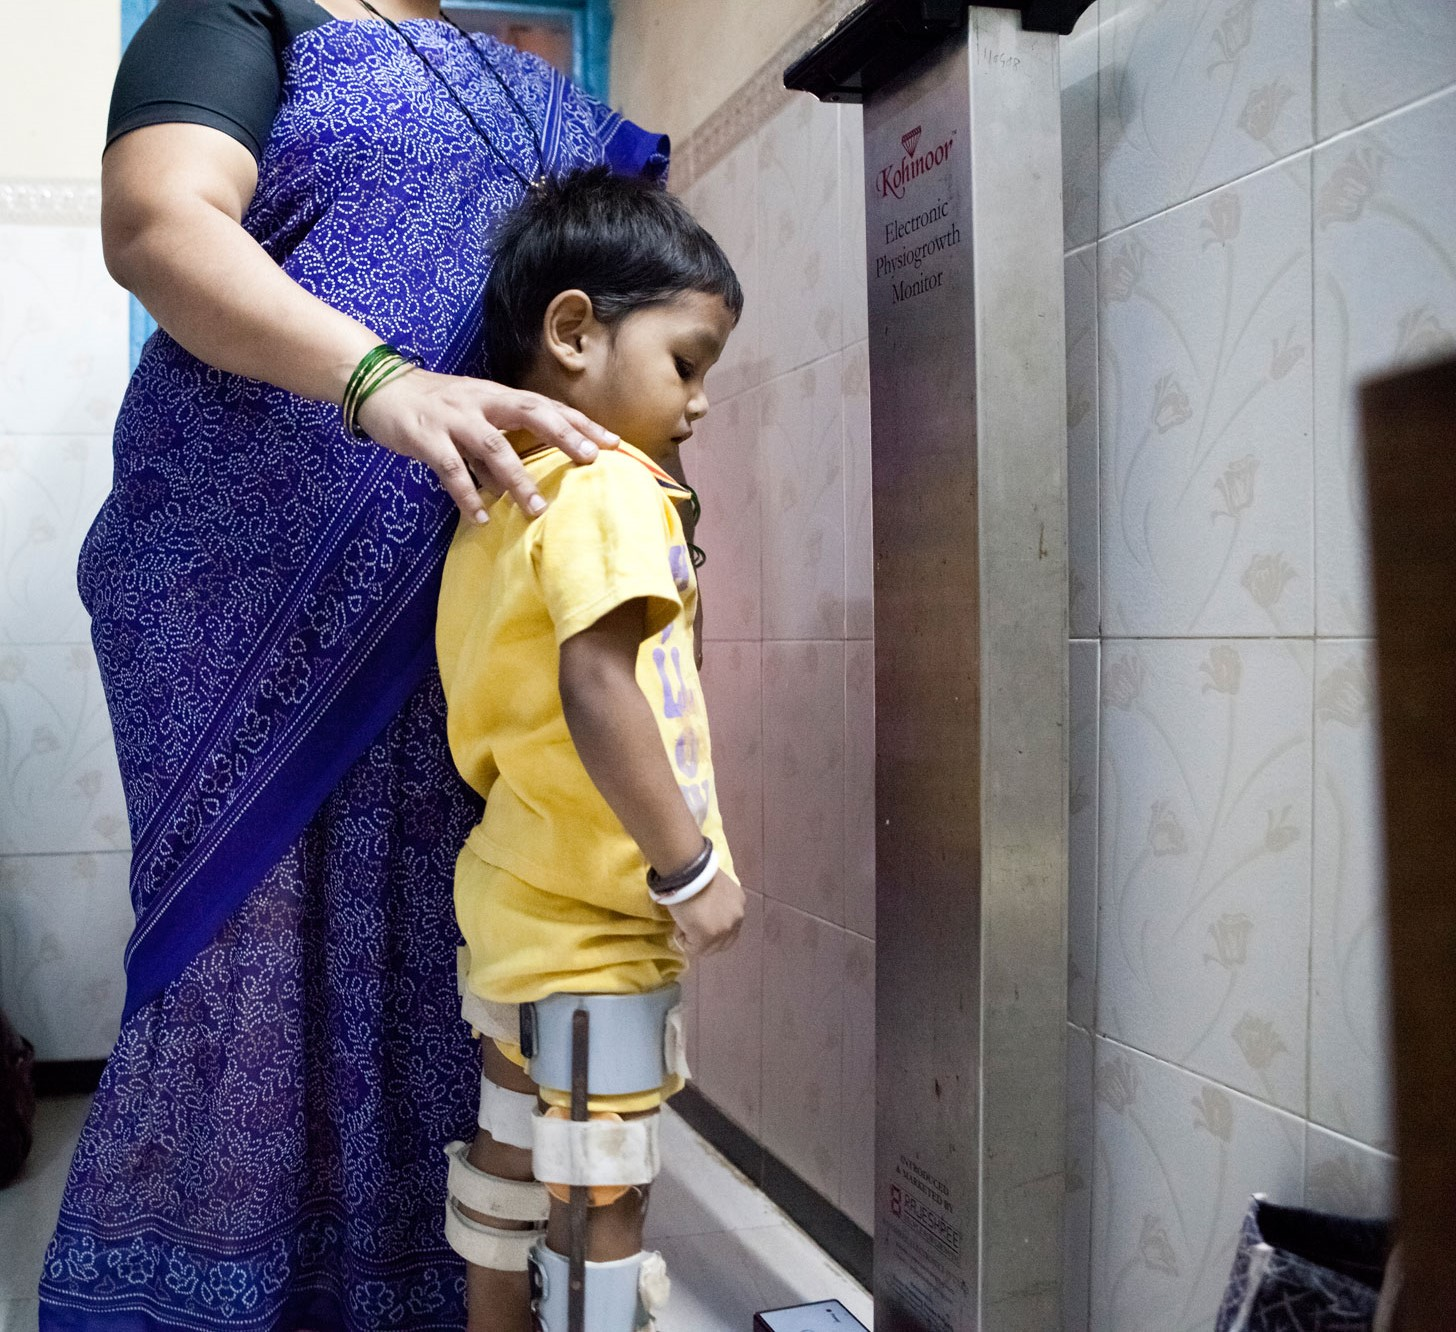 An injured child checking his height